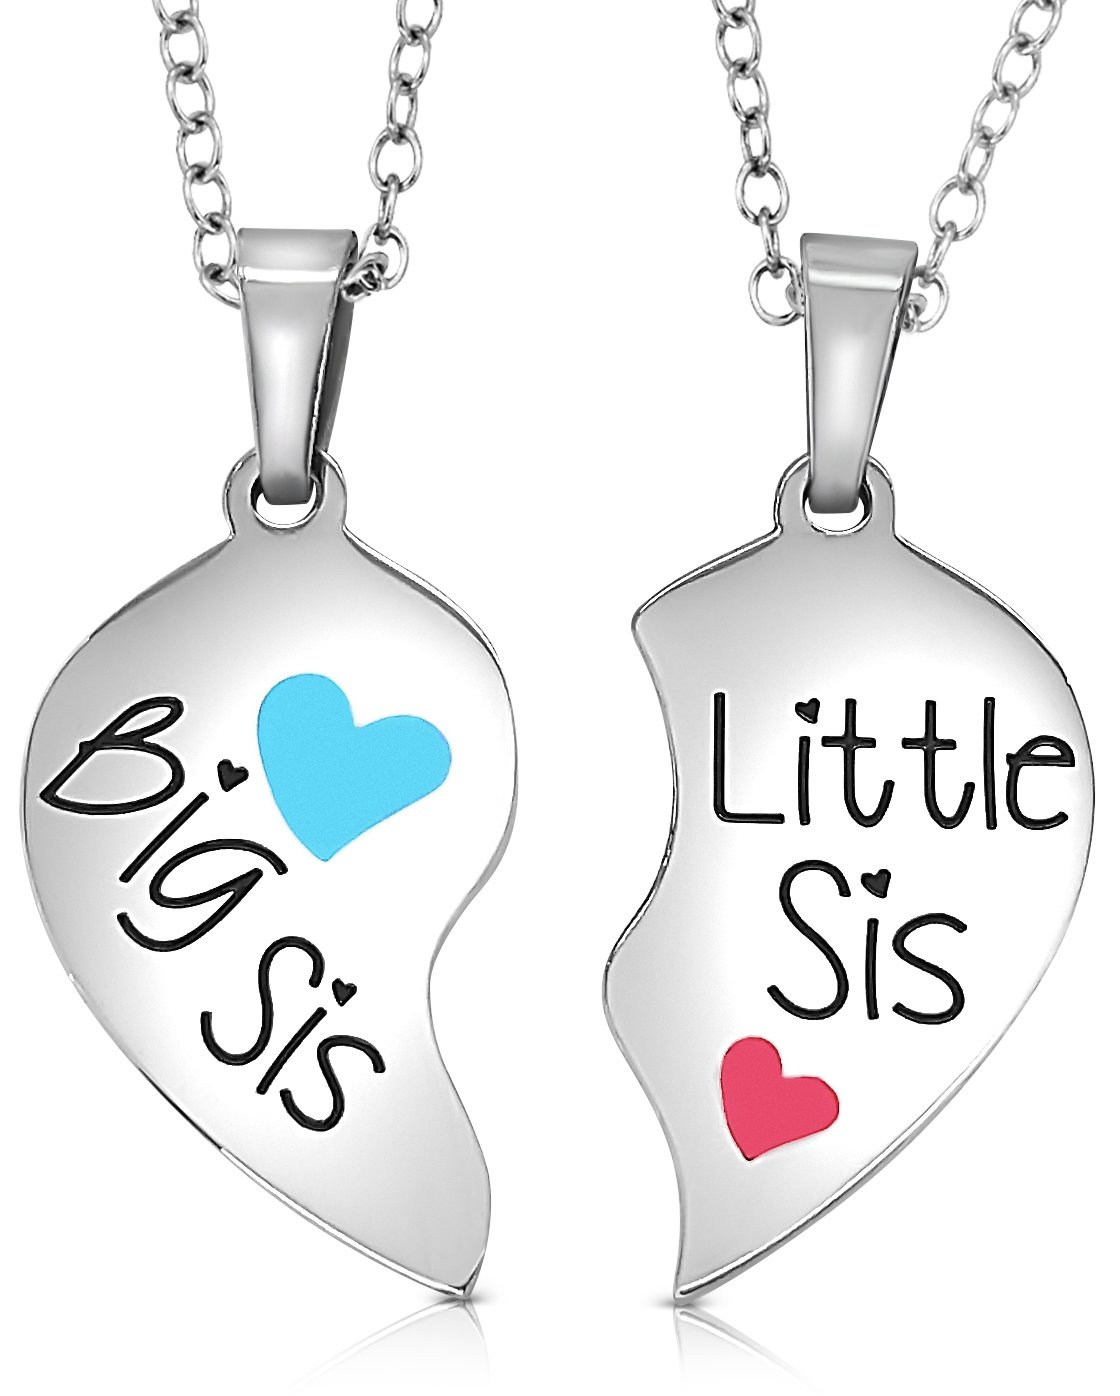 Set of 2 Piece Heart Halves Matching Big Sis Little Lil Sis Sisters Necklace Jewelry Gift Set Best Friends | Sister Necklaces For 2 (Big Sis Blue - Little Sis Pink)